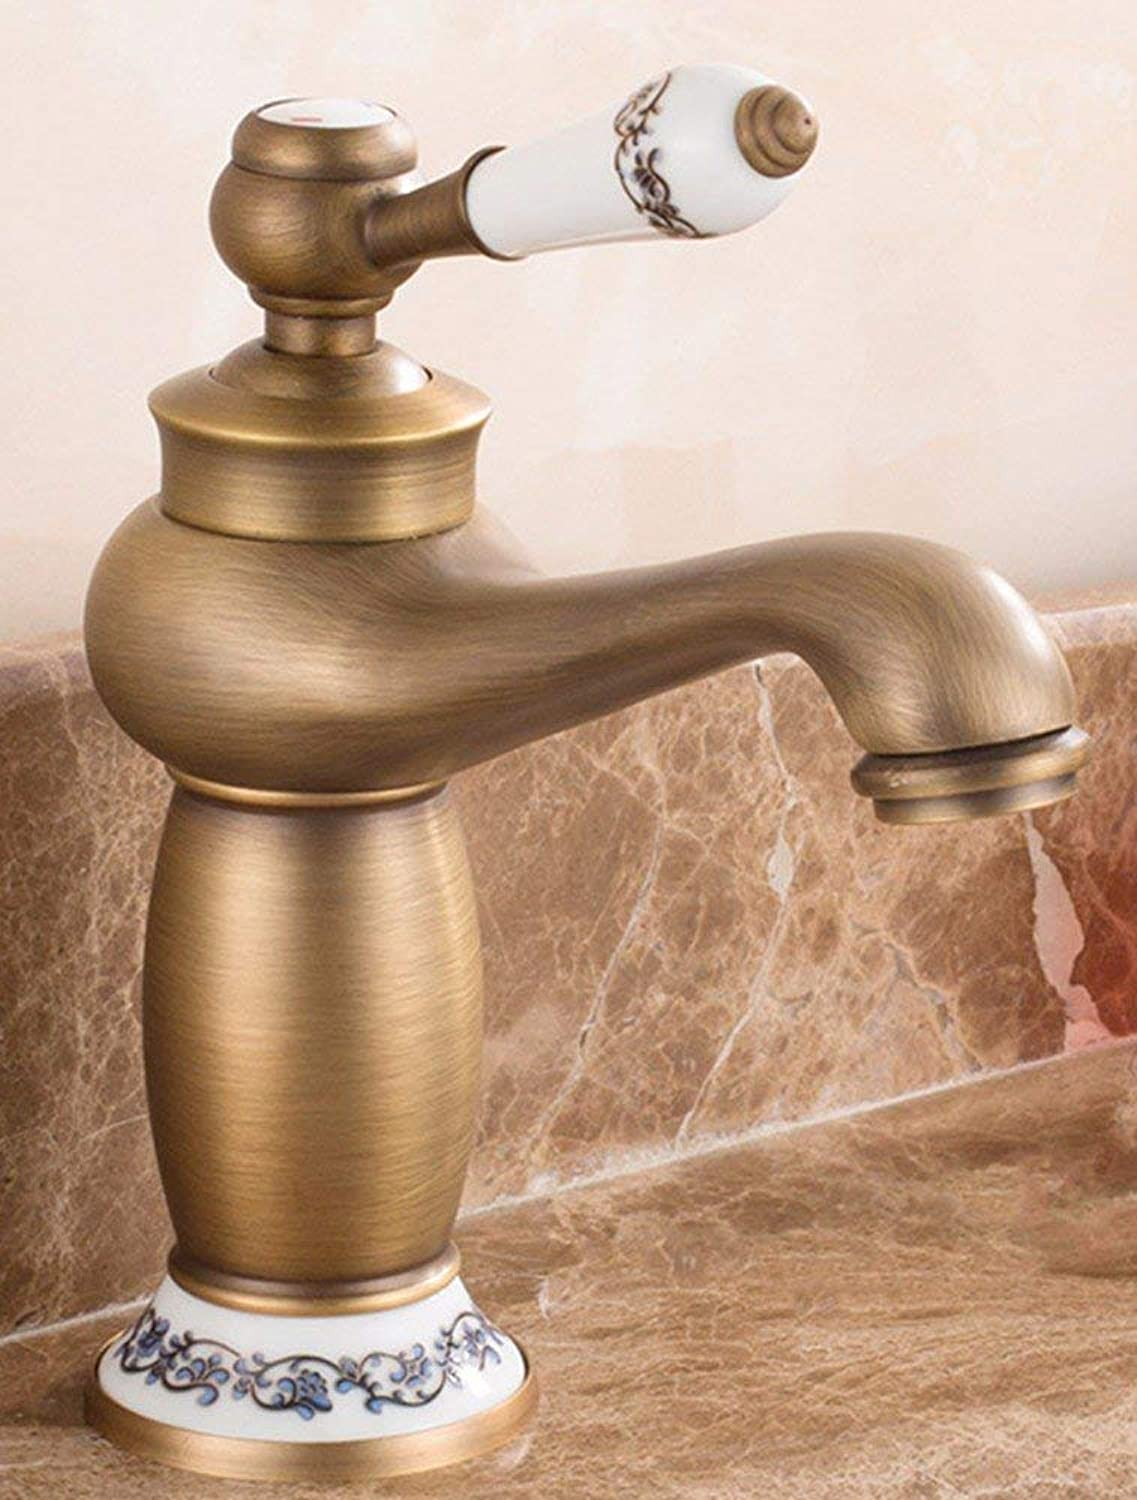 CFHJN HOME European style retro style and copper basin hot and cold Swivel Chrome Plated